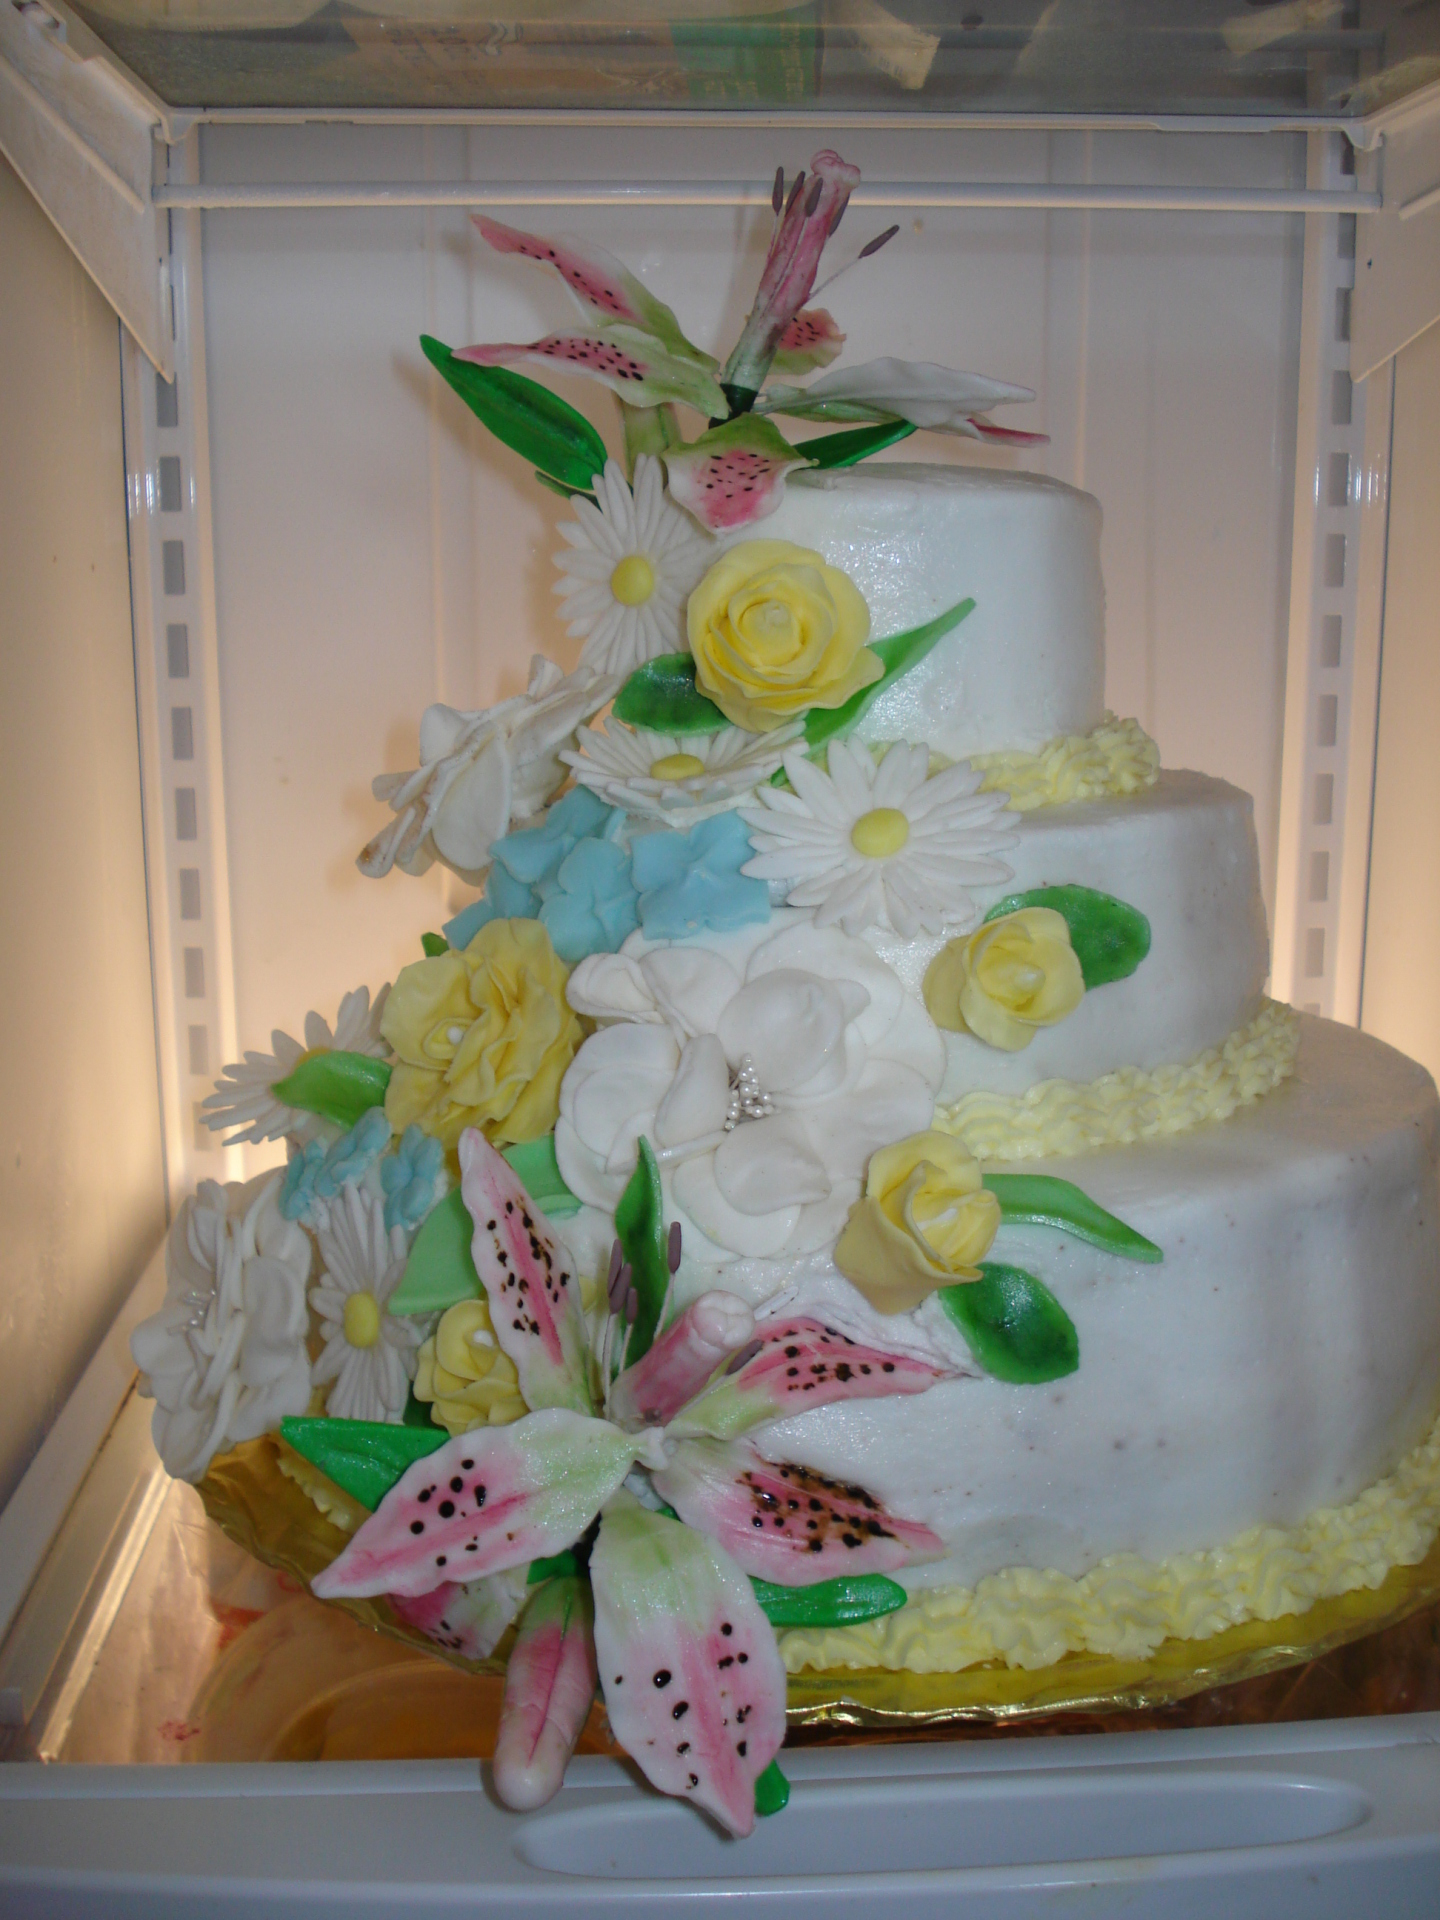 3 Tiered Chocolate Cake w/ raspberry filling, white fondant overlay with Spring inspired gum paste hand made flowers